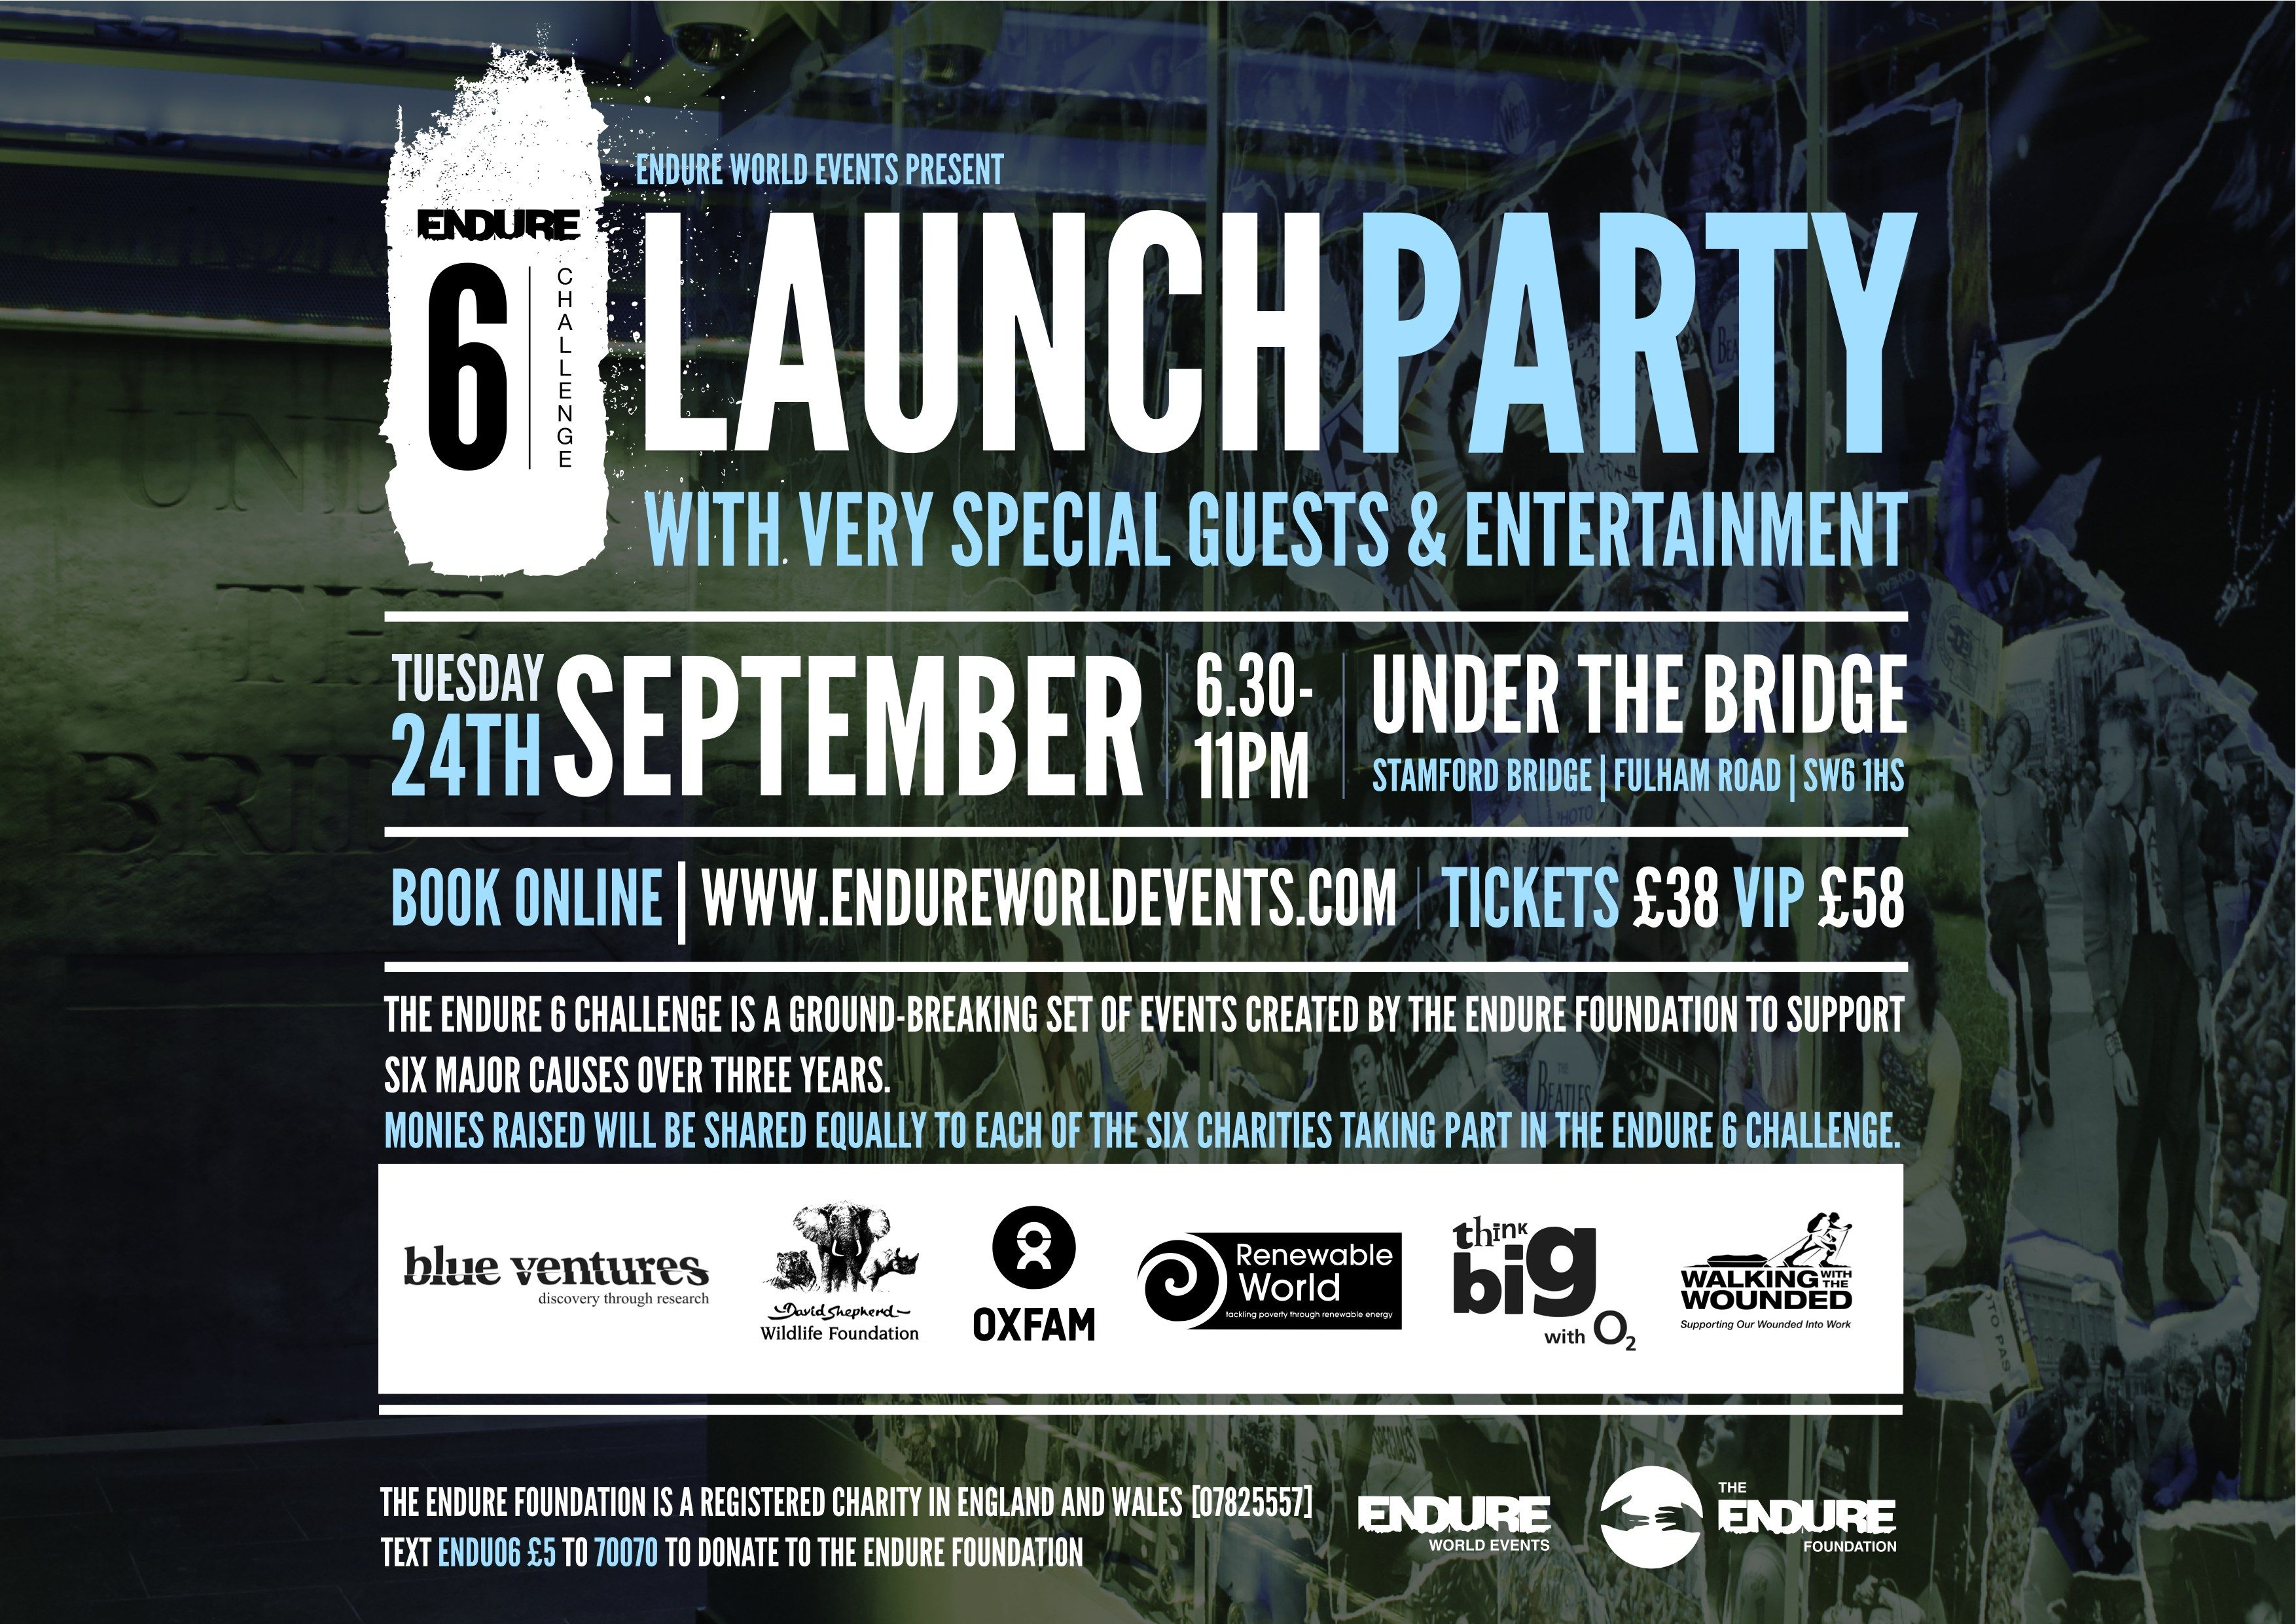 launch event invitation images - Launch Party Invitation